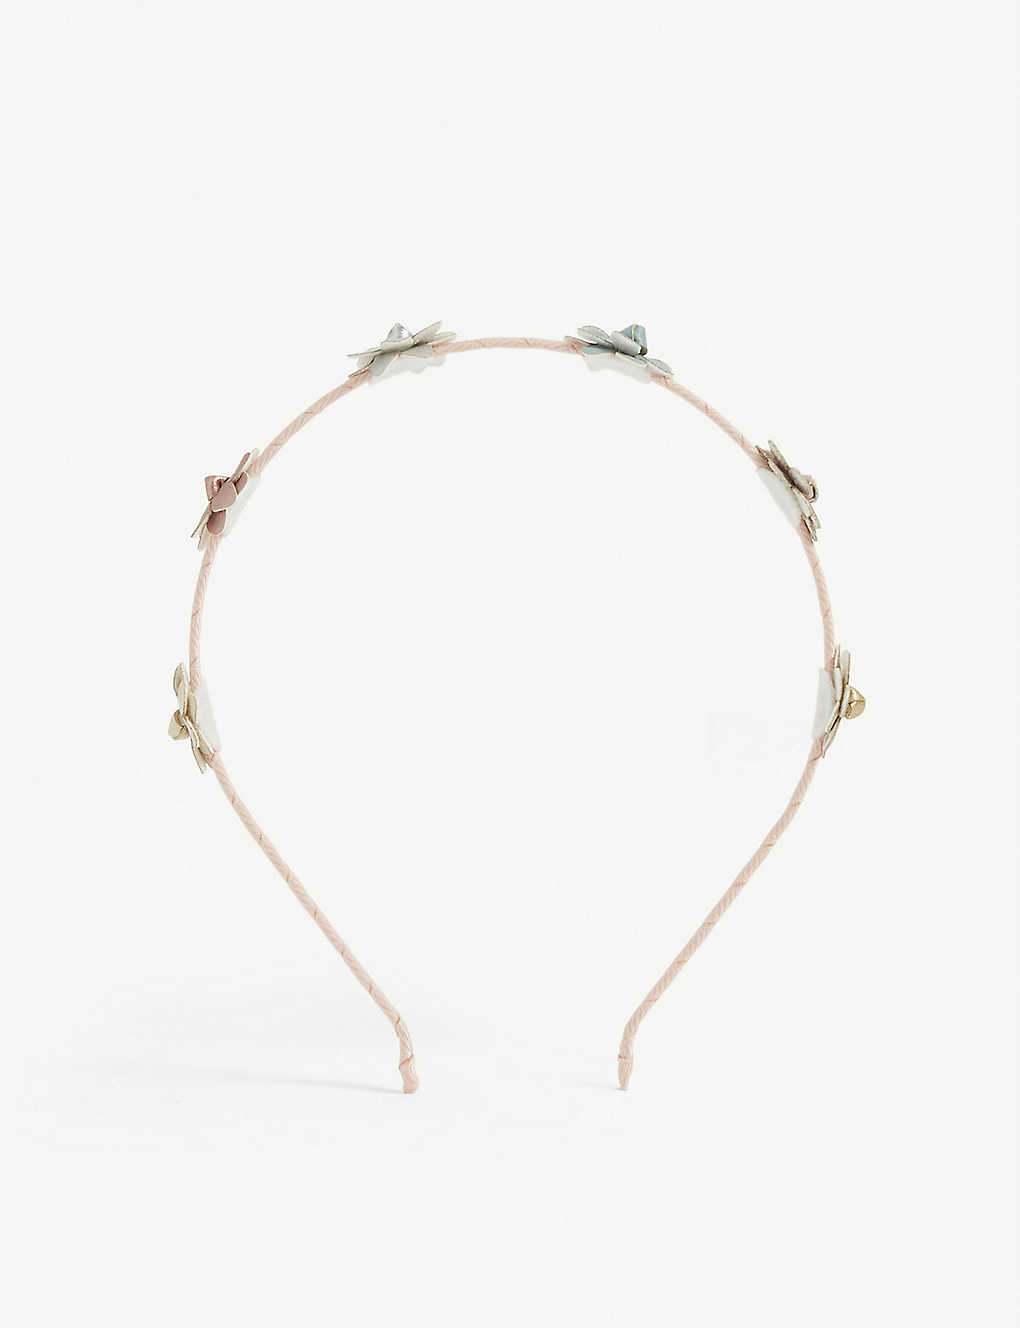 MIMI & LULA: Blossom floral alice band